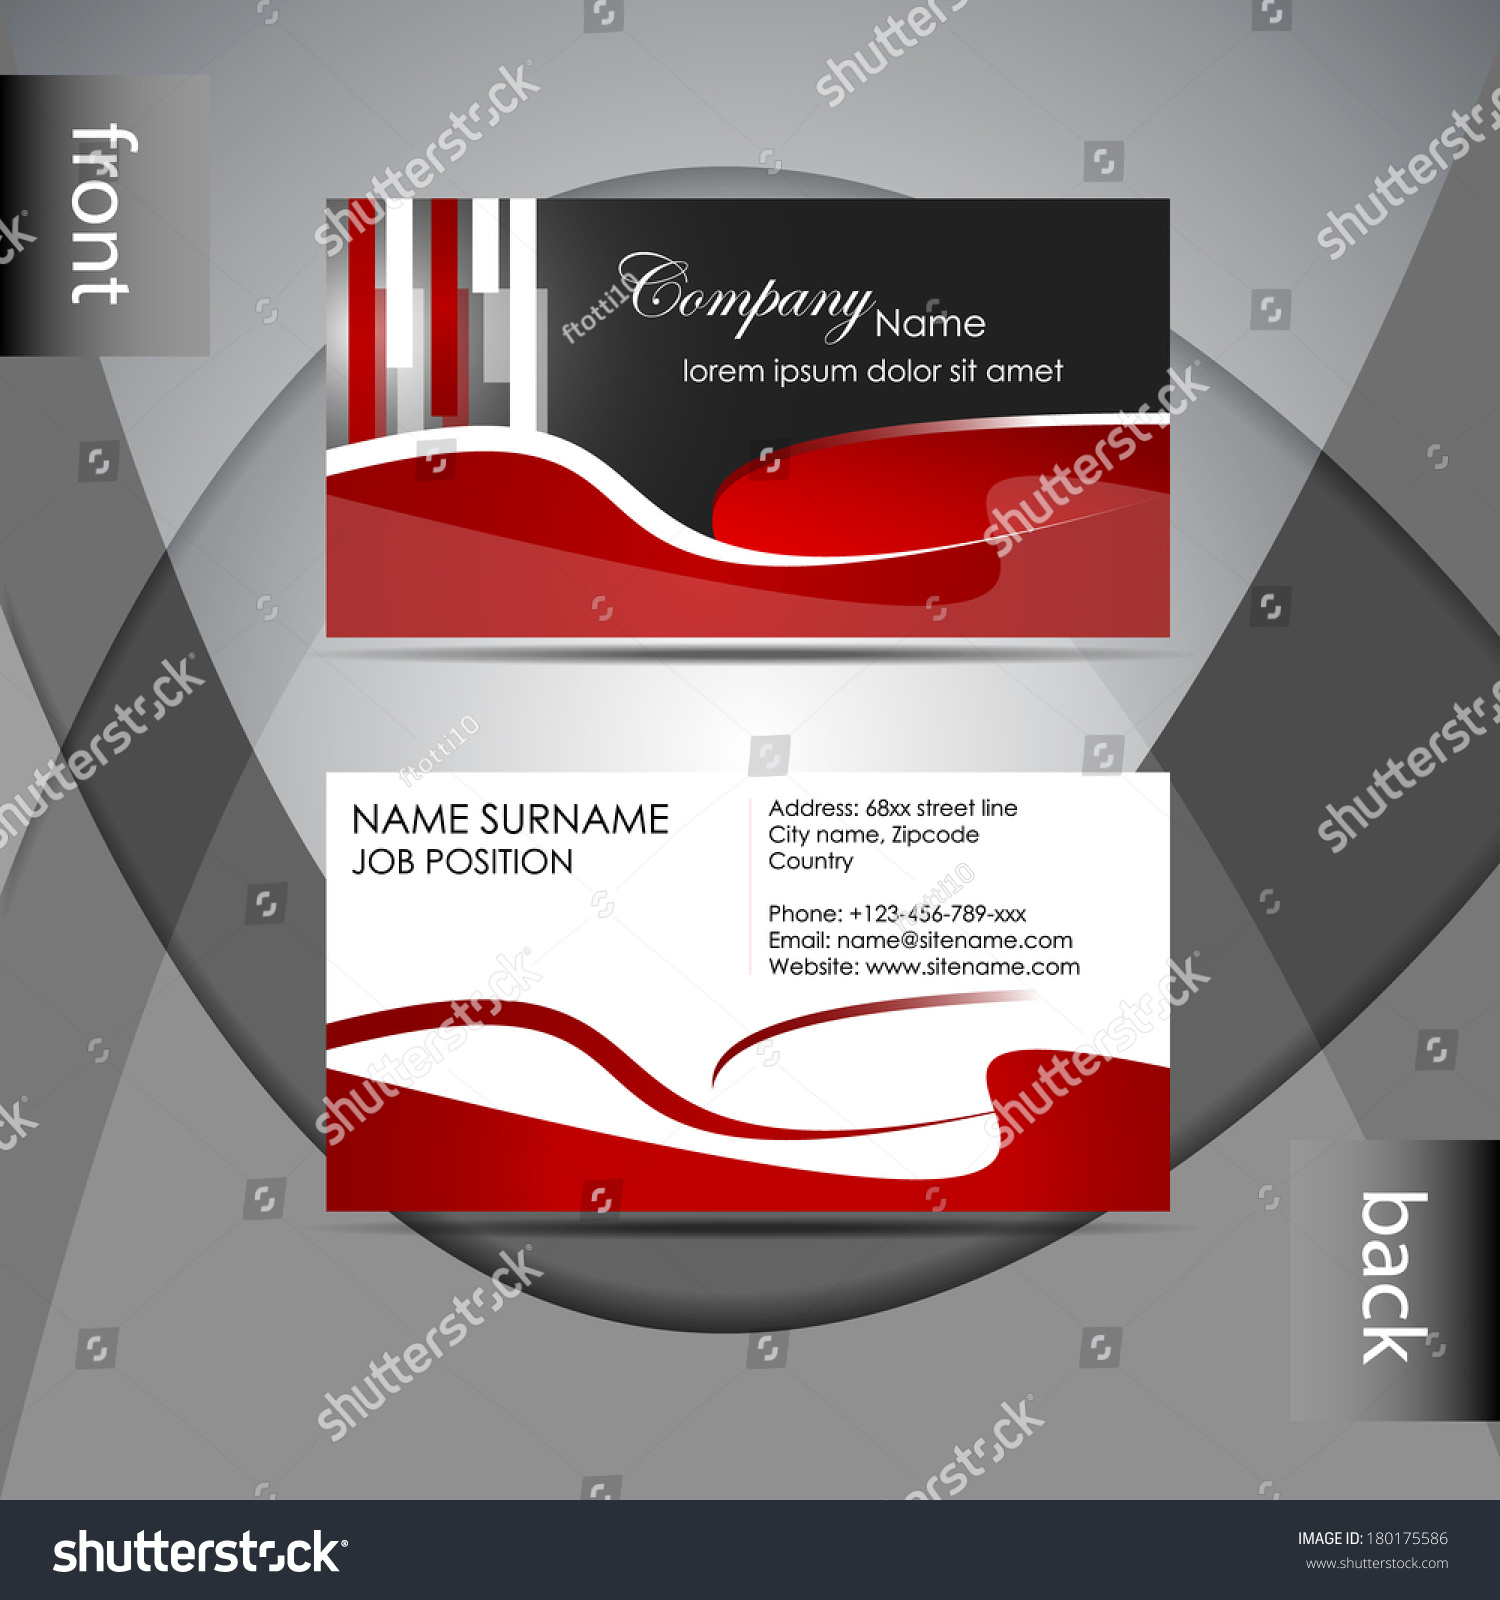 Abstract Professional Business Card Template Visiting Stock Vector ...